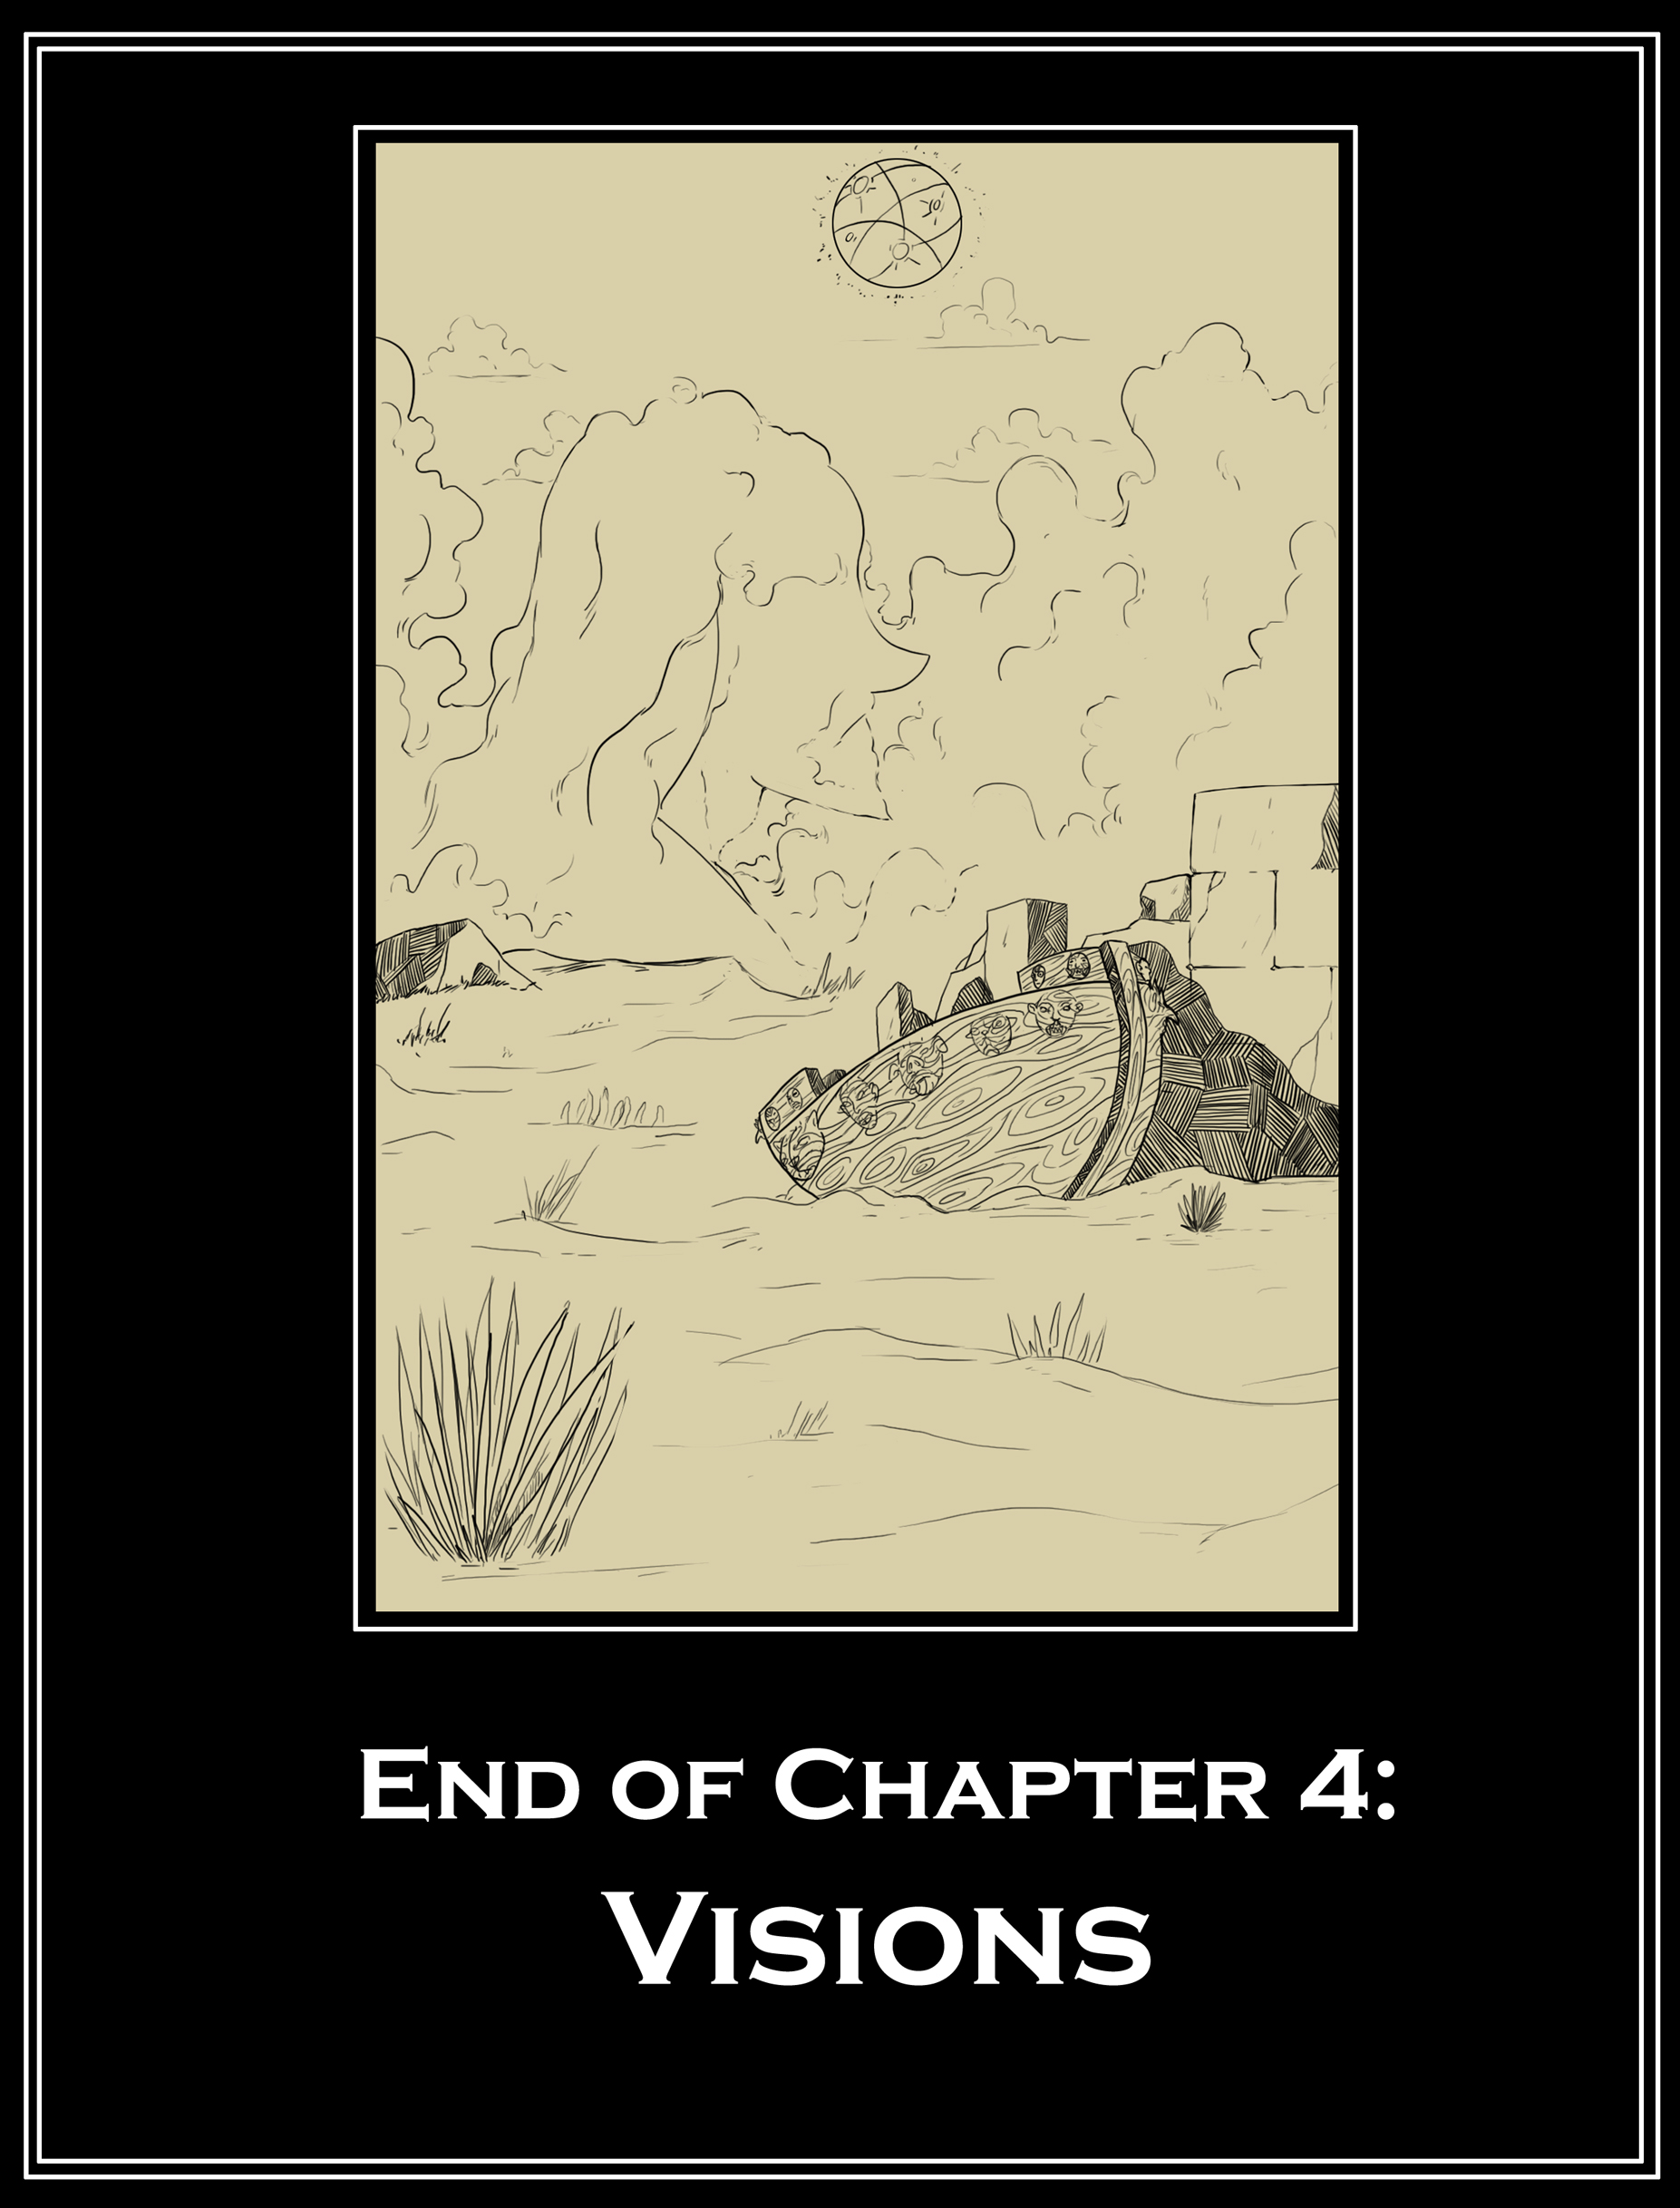 Chapter-end-image